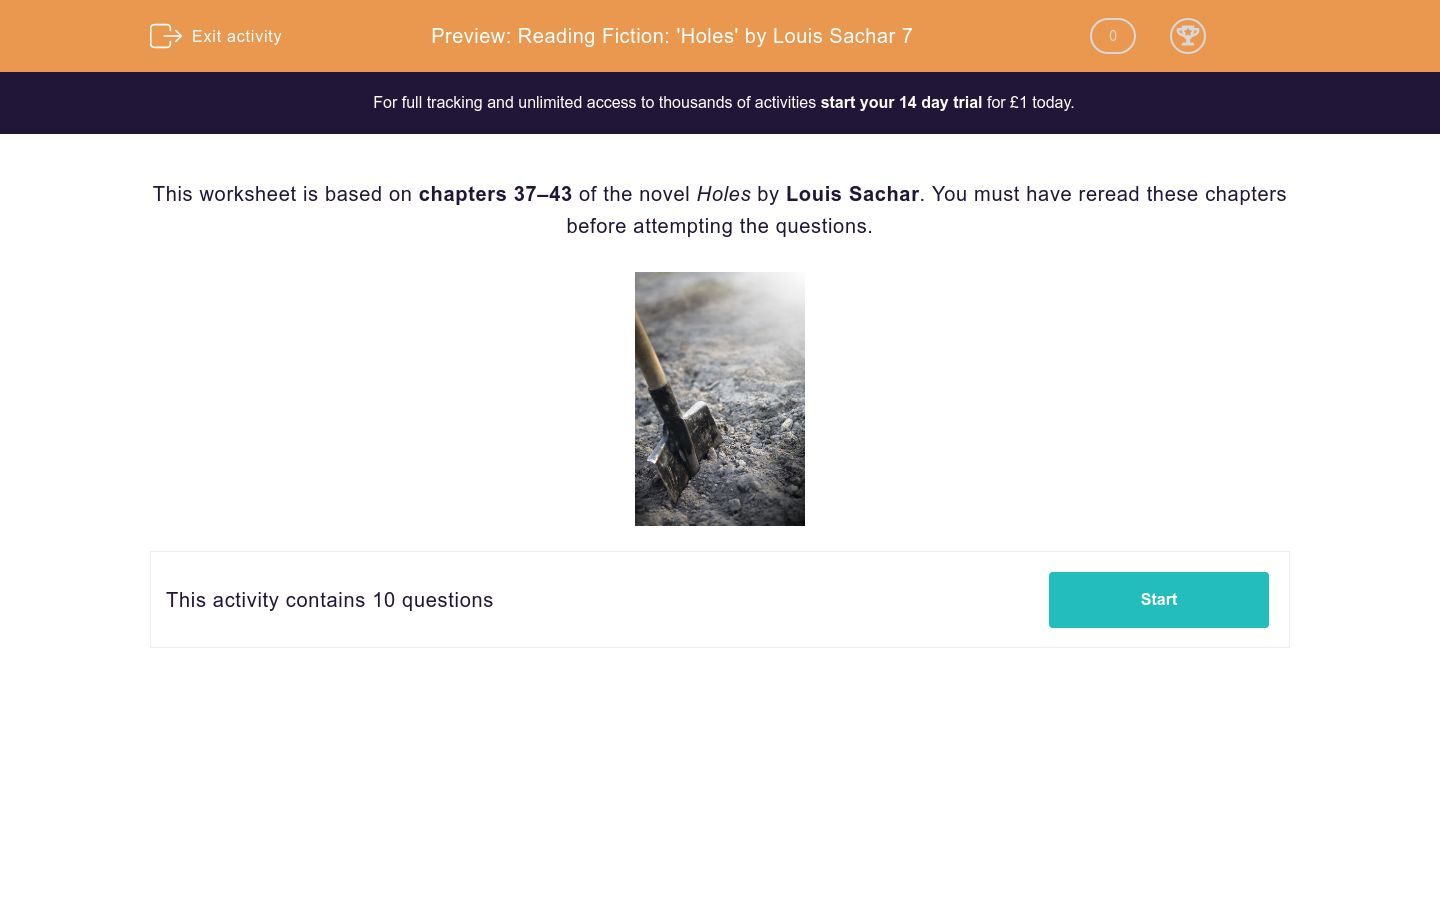 'Reading Fiction: 'Holes' by Louis Sachar 7' worksheet